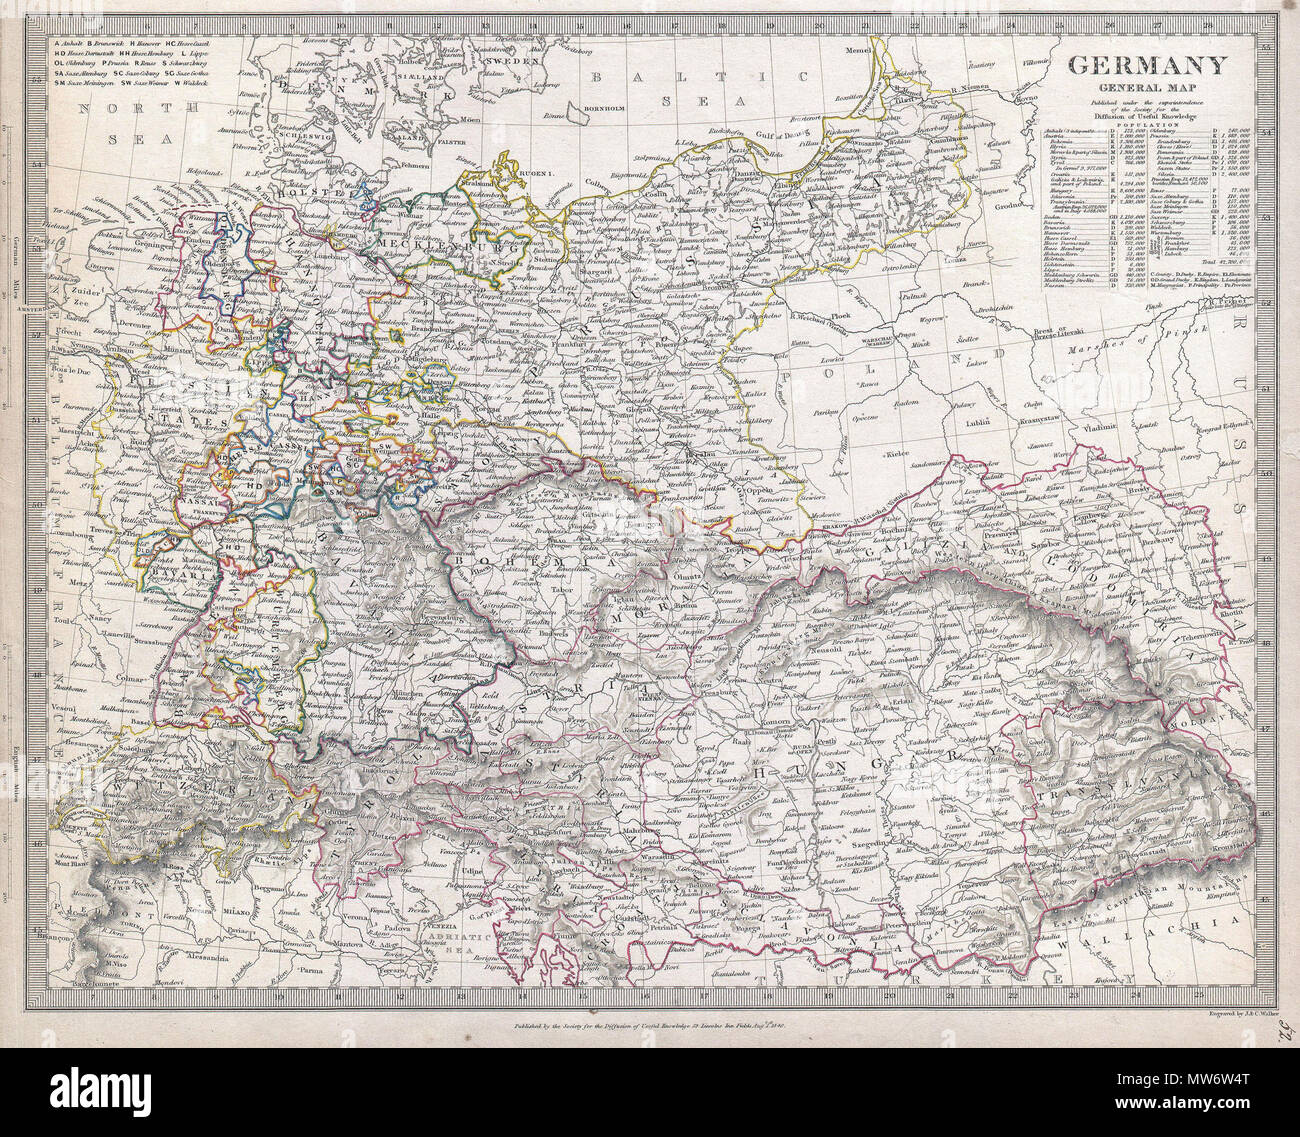 Map Of Germany To Color.Germany General Map English This Is The Society For Diffusion Of